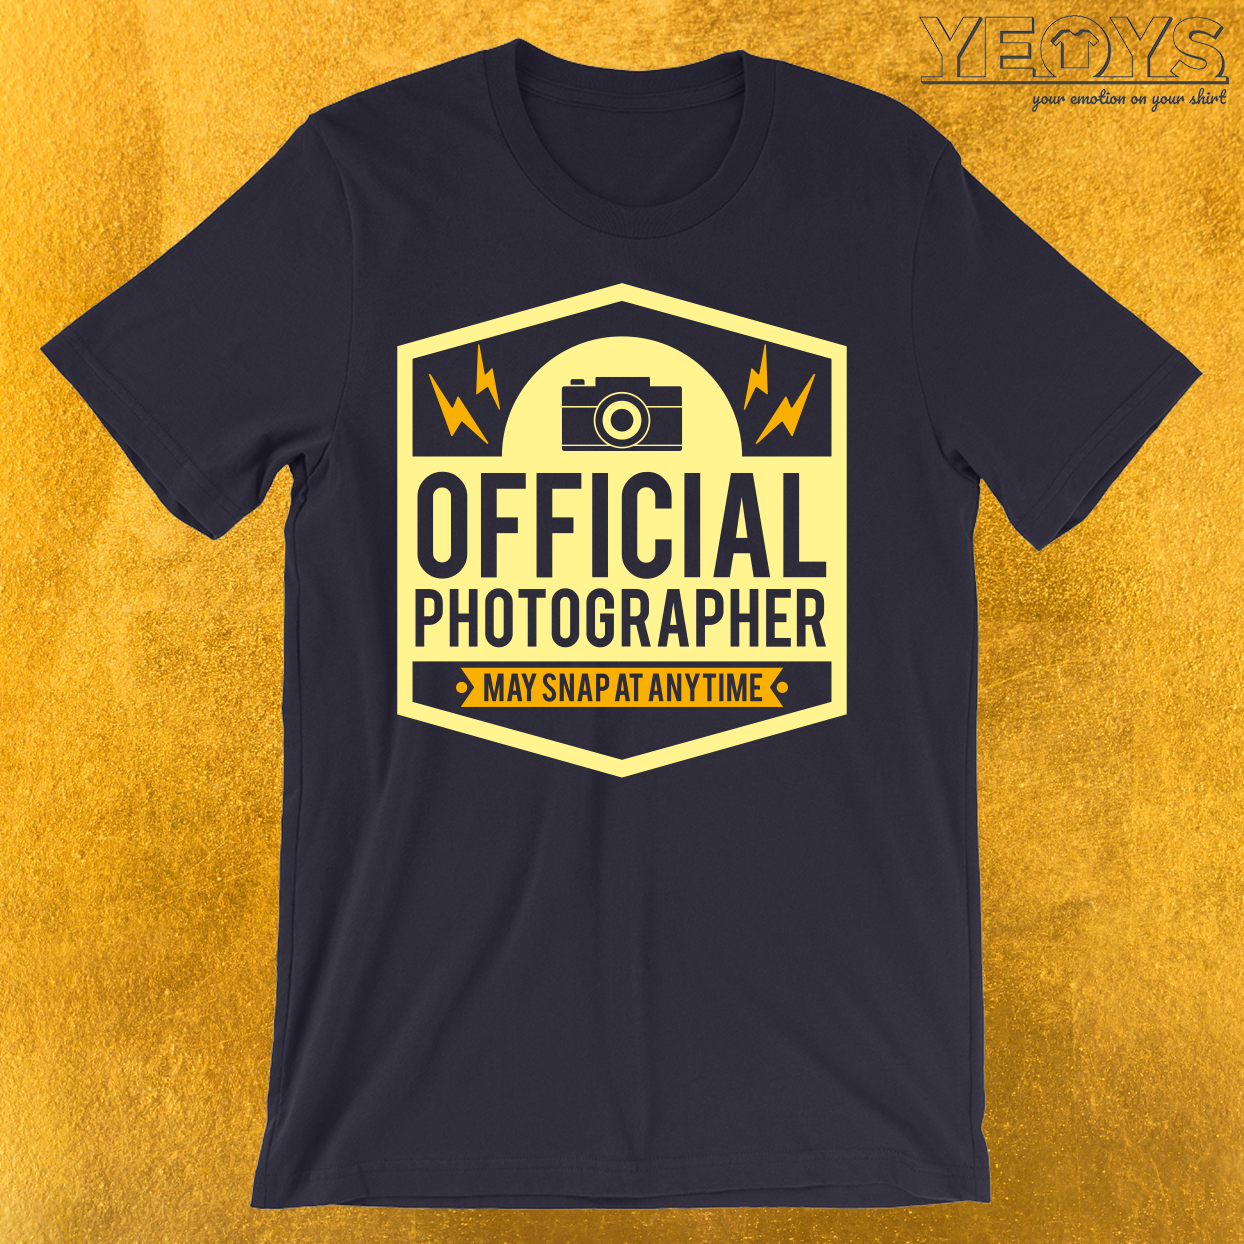 Official Photographer May Snap At Anytime T-Shirt